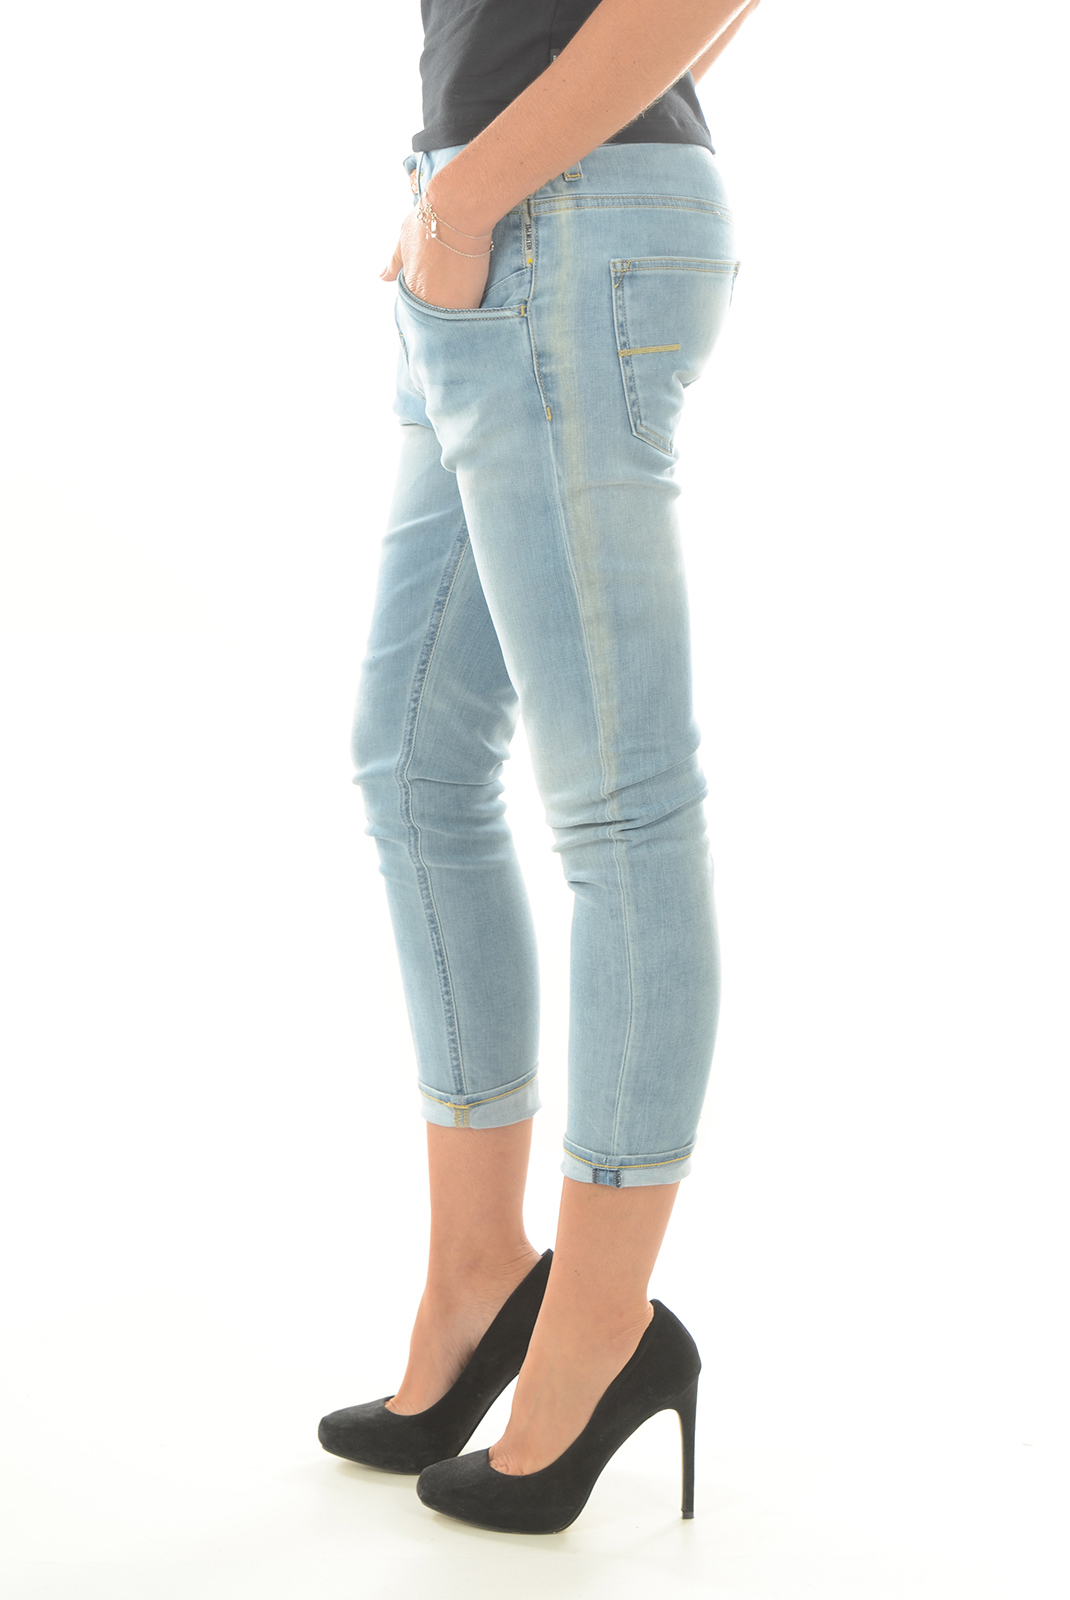 Jeans   Meltin'pot LEIA D1622 UK475 BLEU SB14